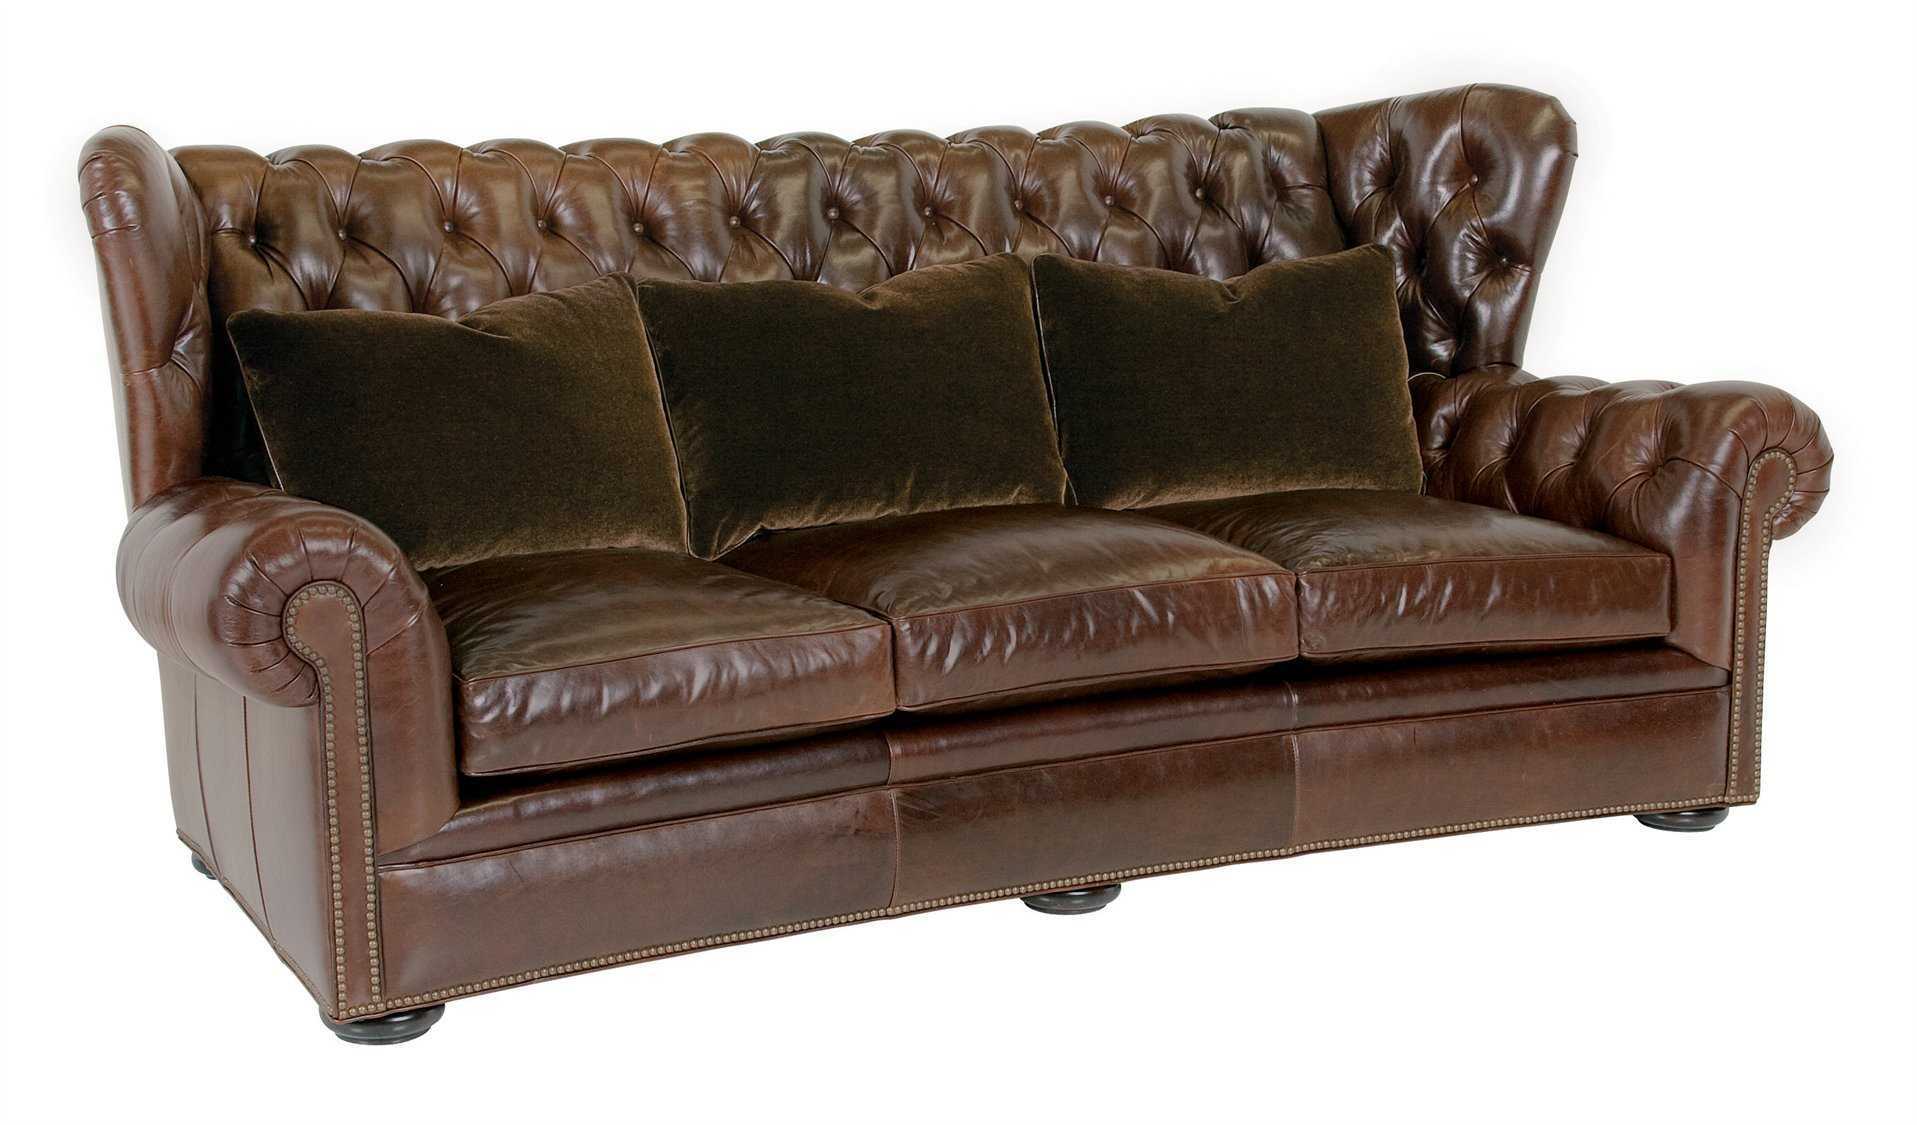 Classic leather pomeroy tufted sofa cl